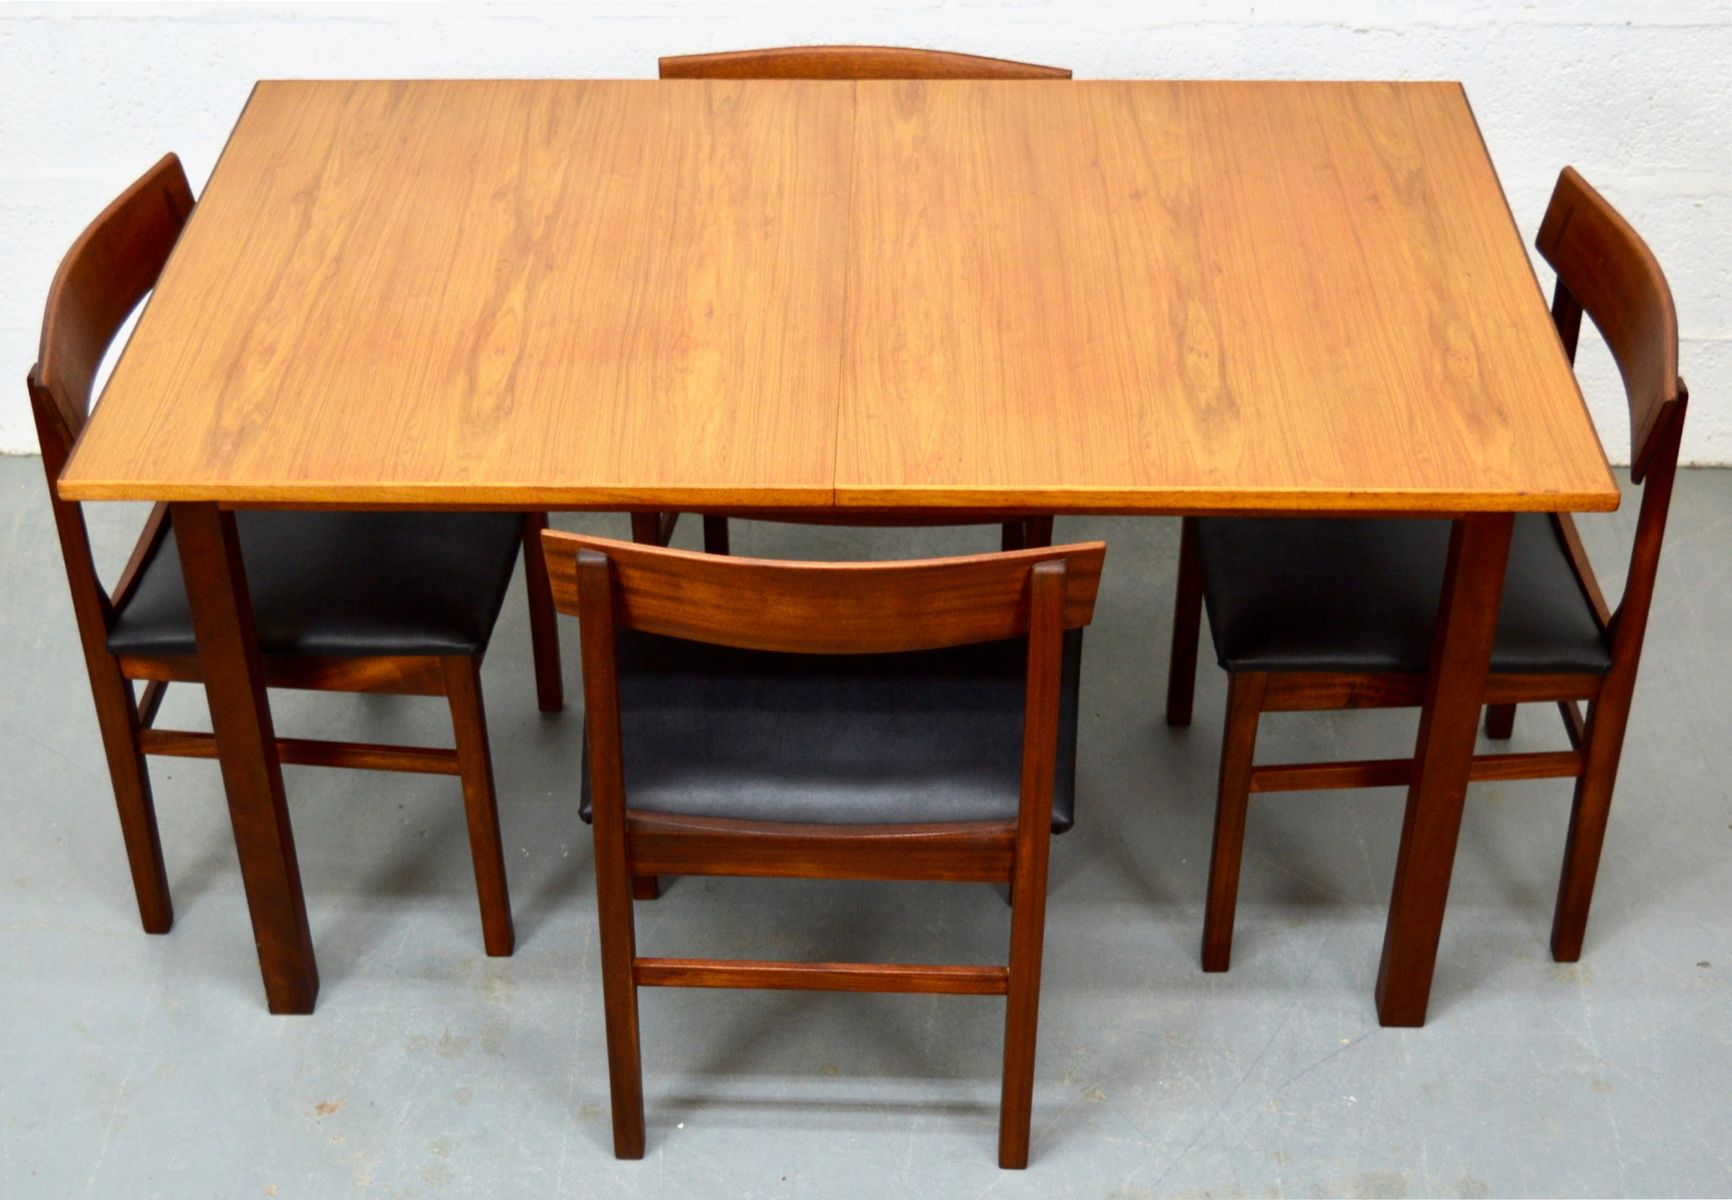 mid century teak tisch und st hle von gordon russell bei. Black Bedroom Furniture Sets. Home Design Ideas